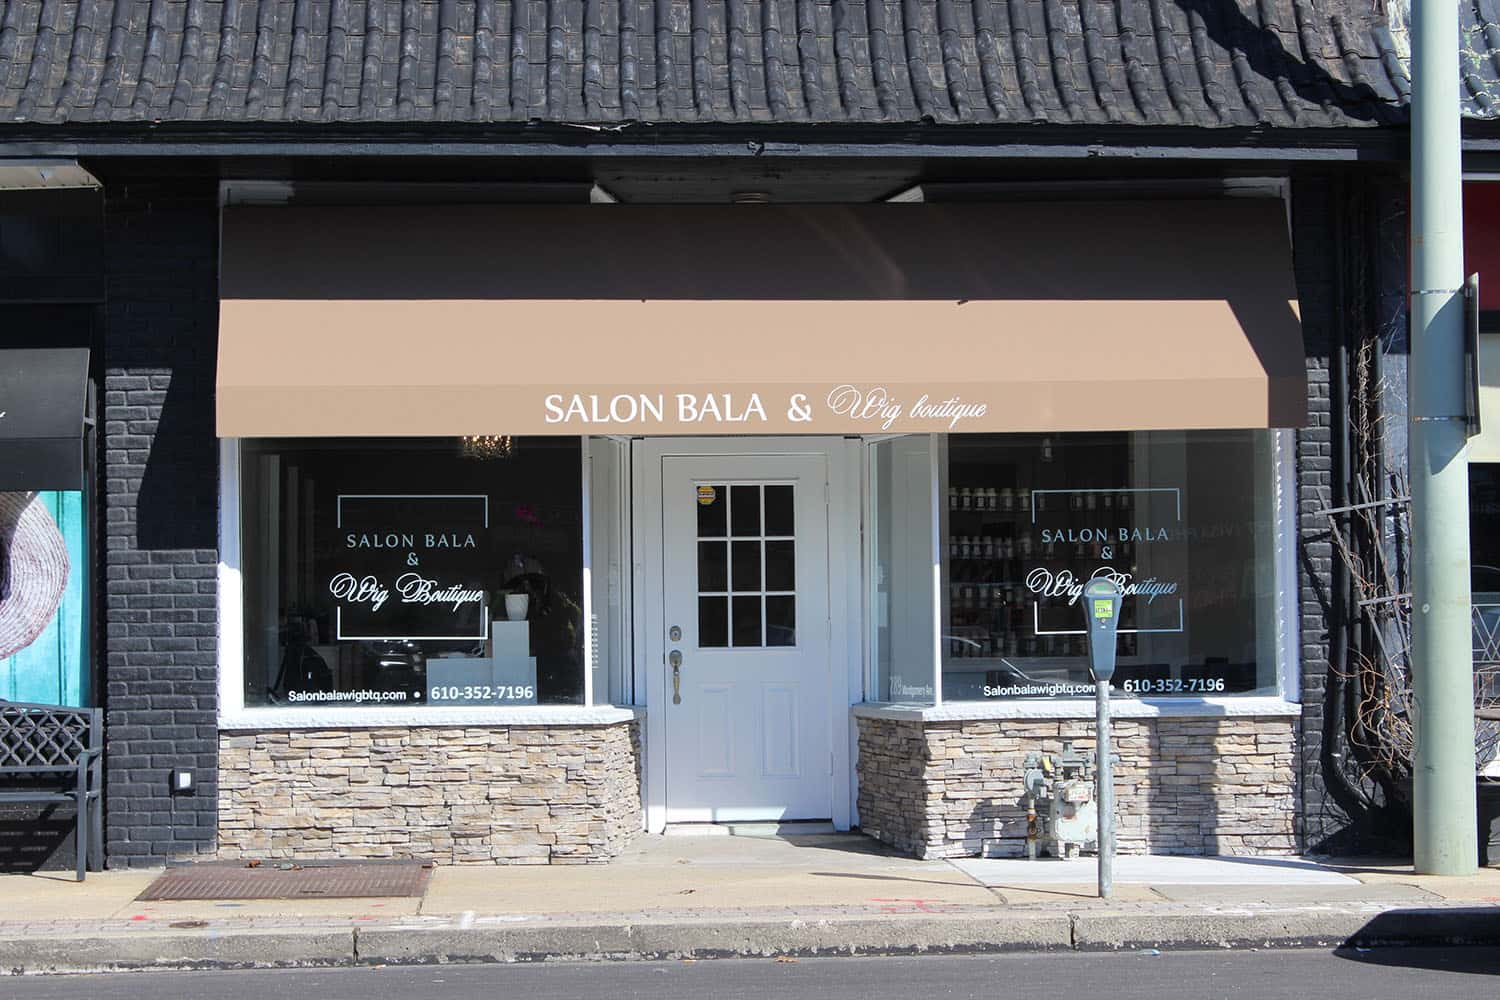 Decoration design of Salon Bala & Wig Boutique storefront.